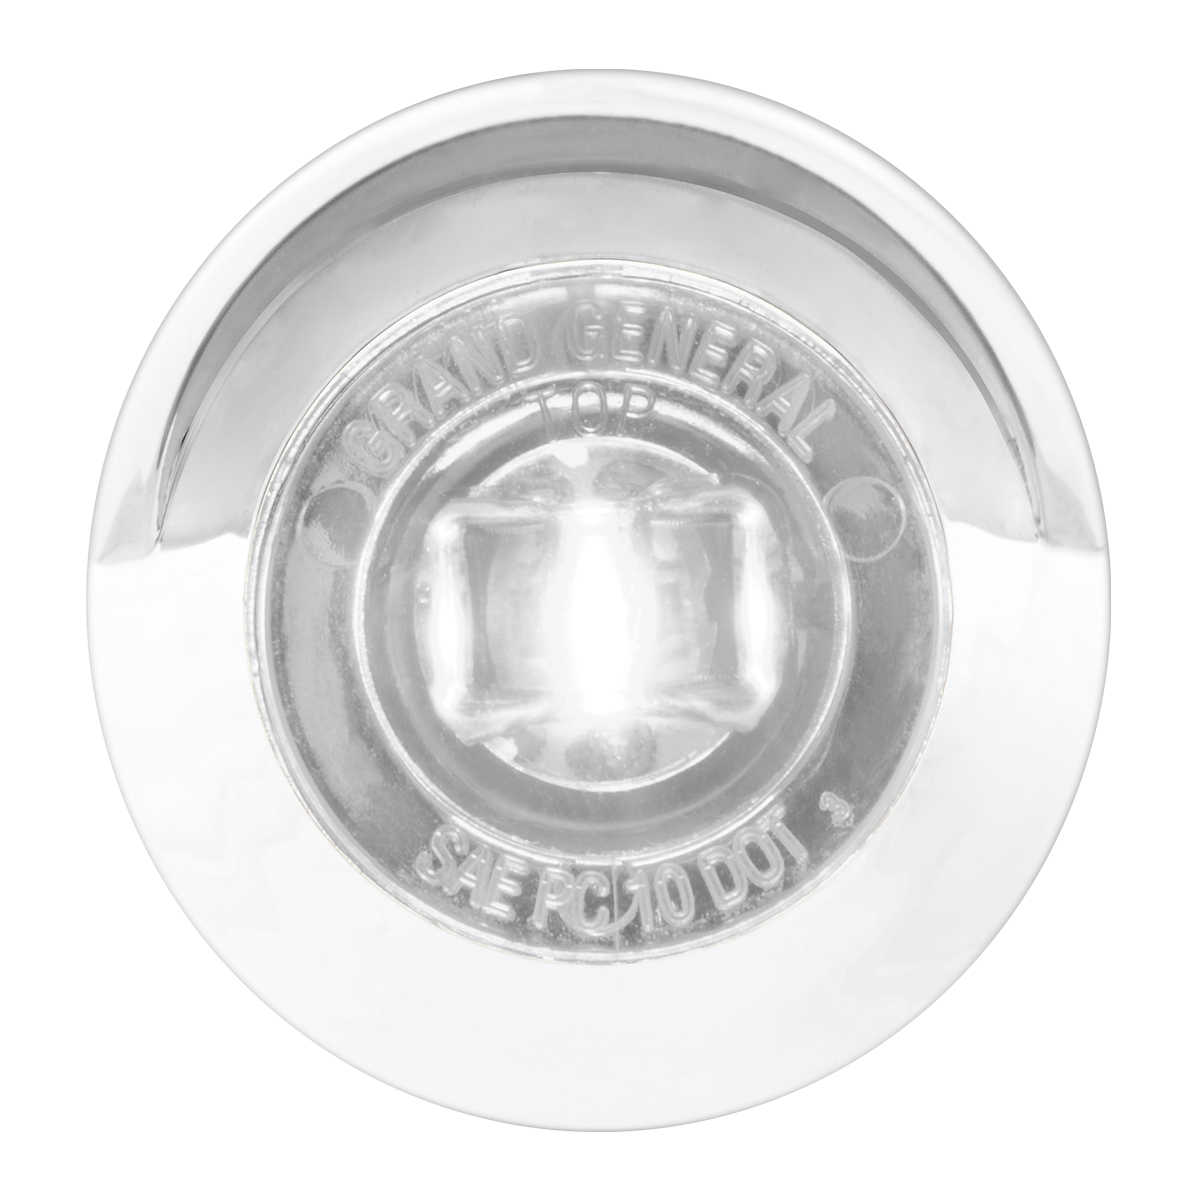 "75234 1-1/4"" Dia. Dual Function LED Light with Chrome Plastic Bezel w/ Visor and Nut"